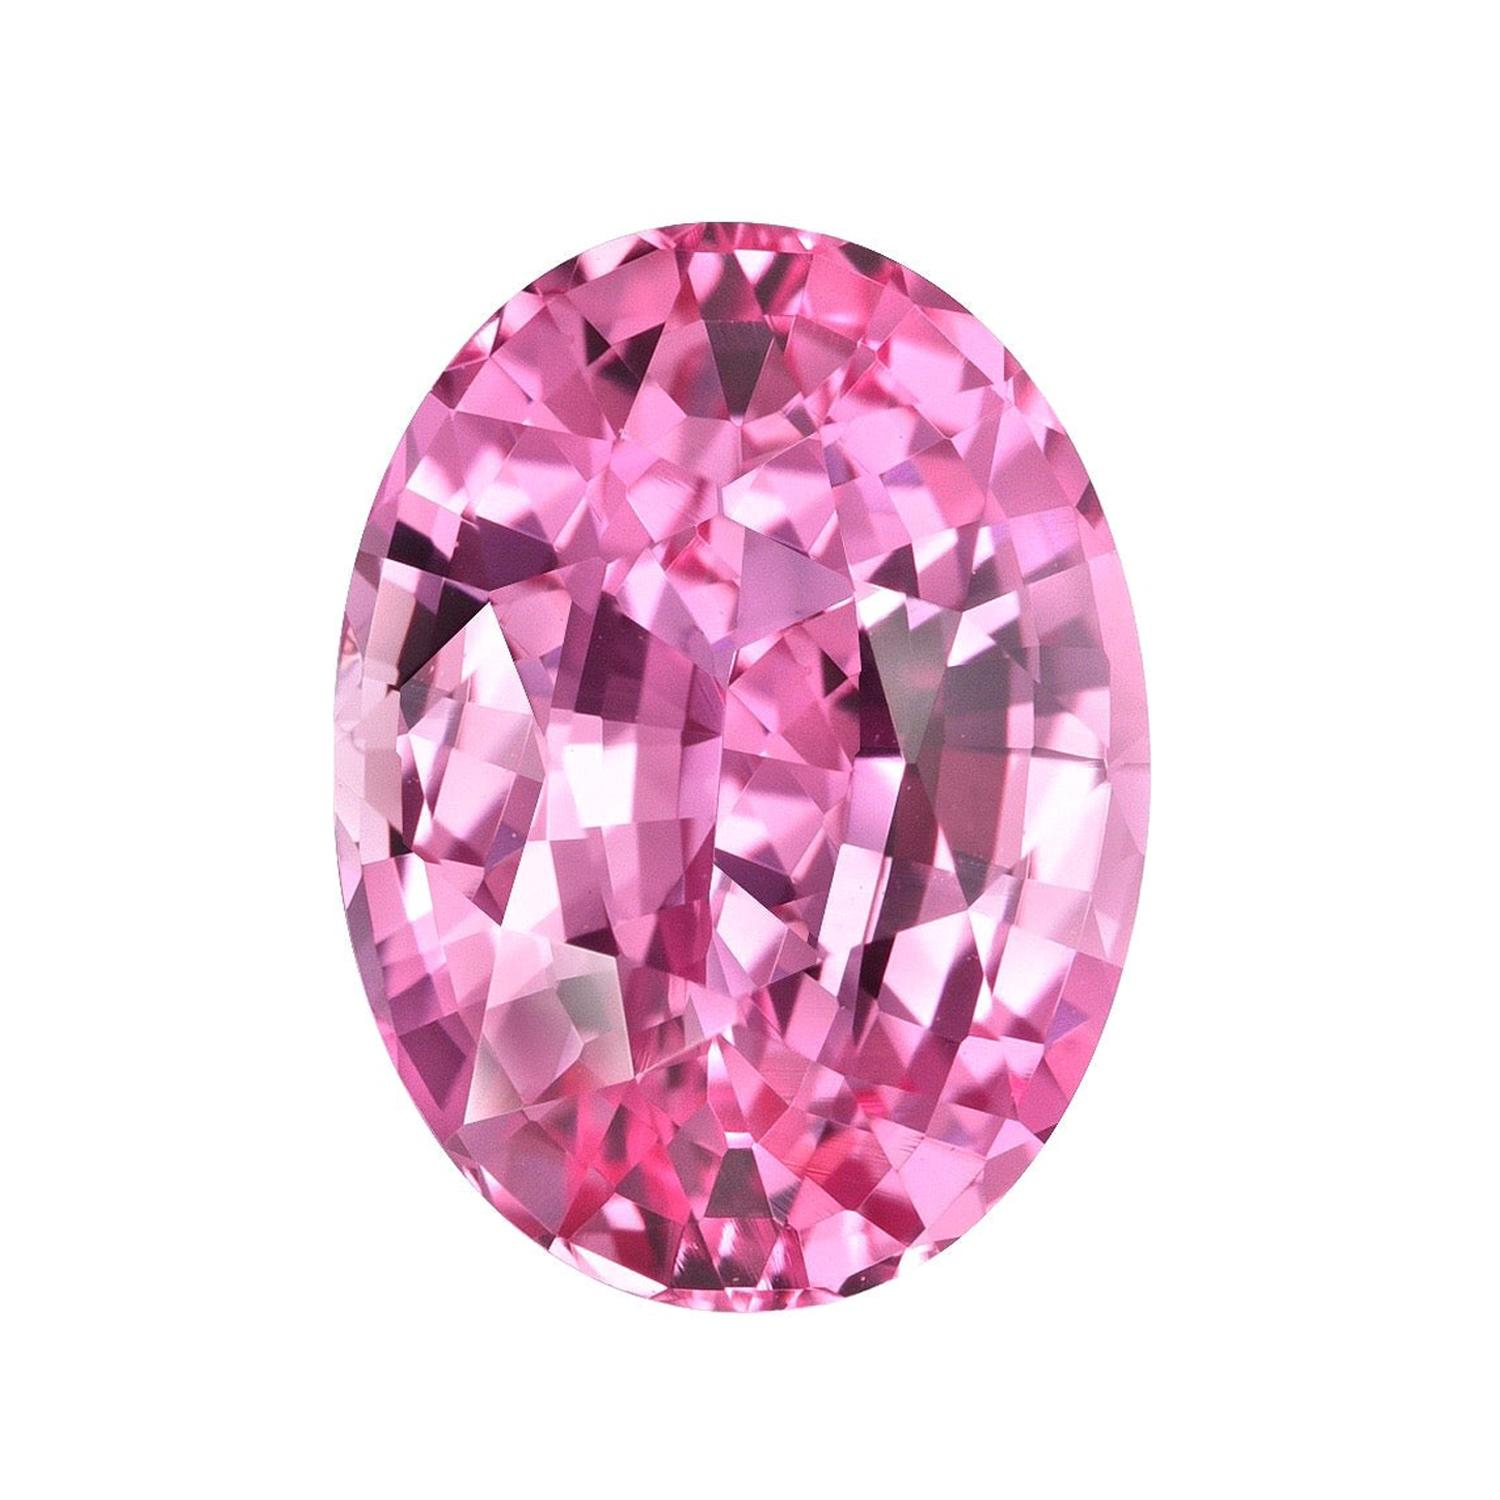 Unheated Pink Sapphire Ring Gem 3.19 Carat Oval Loose No Heat Gemstone